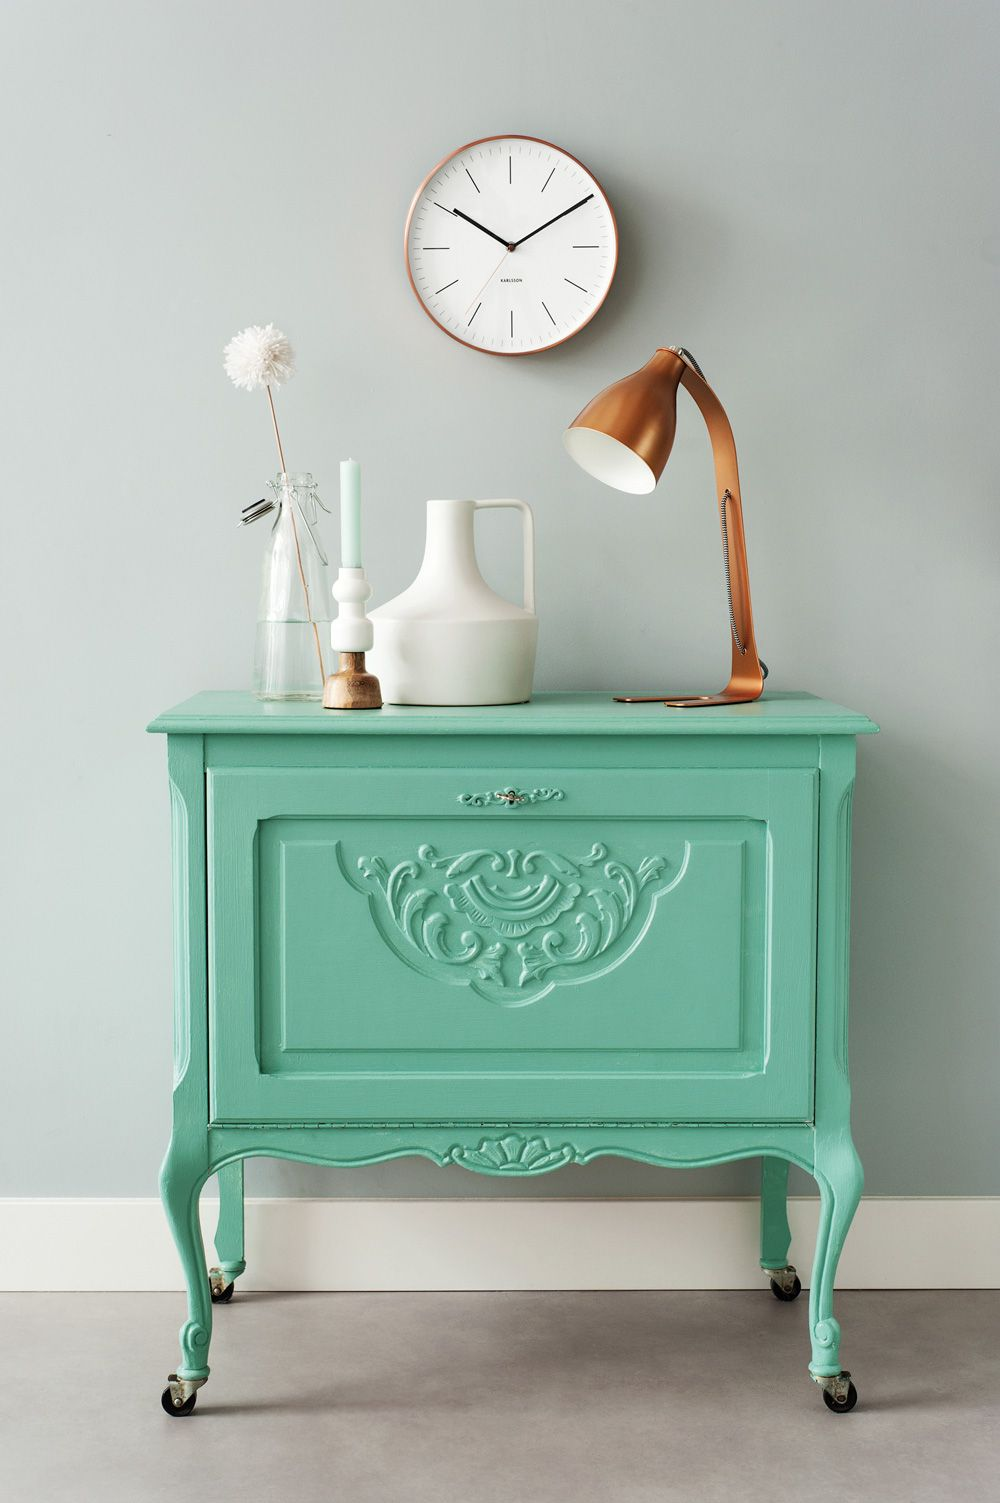 Navy mint and peach home decor clocks interiors and paint mint green and copper always a beautiful color combo pt living vases and candle holder karlsson clock and leitmotiv table lamp geotapseo Choice Image